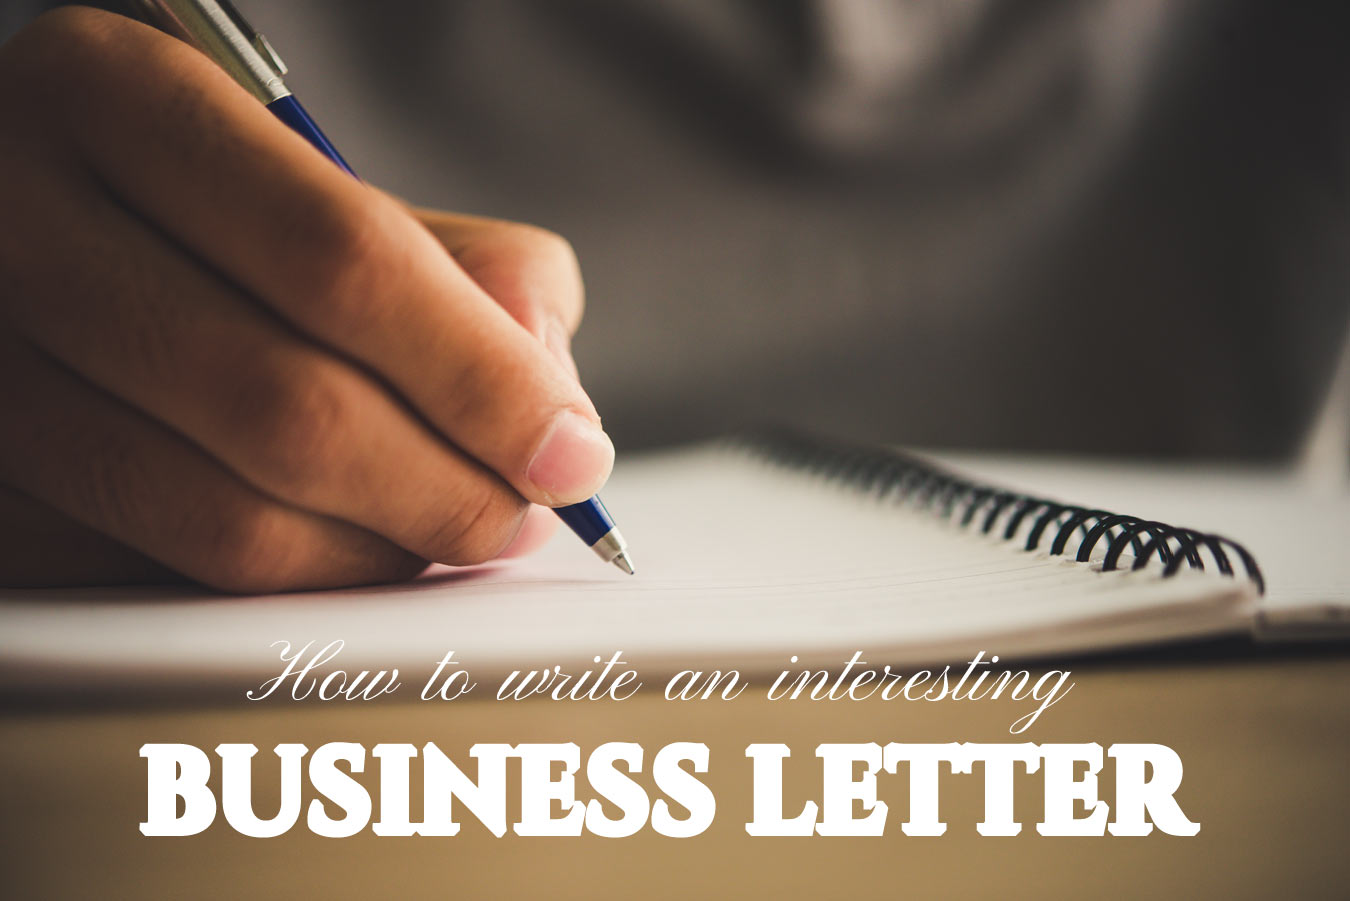 How to write an interesting business letter